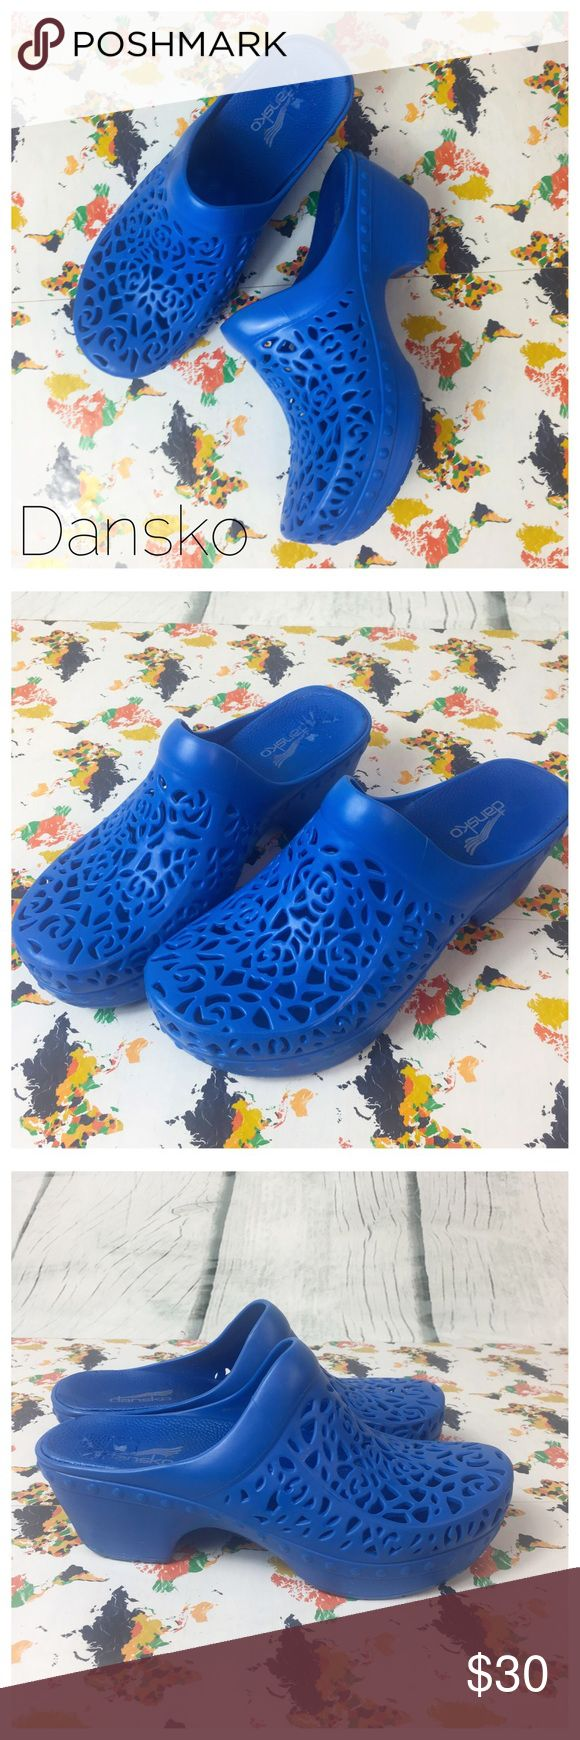 """Dansko Laser Cut Rubber molded Clog Dansko Pippa Women's Laser-cut Blue Rubber Clogs Blue 36/5.5-6 Preowned  Heel 2.5"""" 0210 Bundle in my closet and save. I ship same day or next day almost always! No Dansko Shoes Mules & Clogs"""